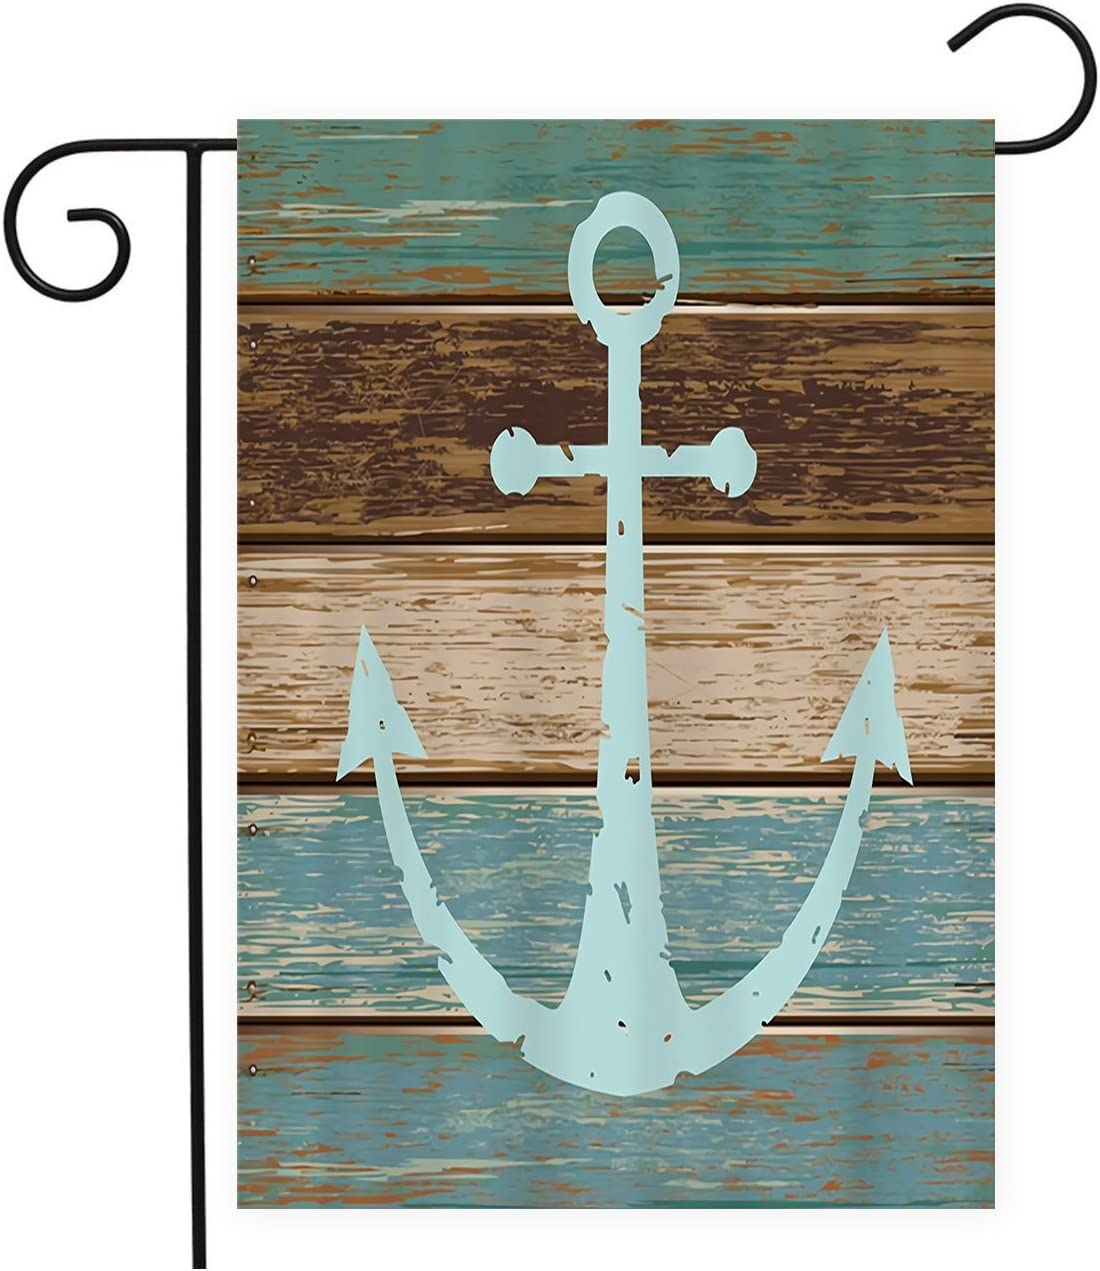 TweetyBed Garden Flag Nautical Anchor Vintage Wood Rustic Double-Sided Winter Seasonal Banner for Outdoor Party Wedding Yard Lawn Home, 100% Polyester 12